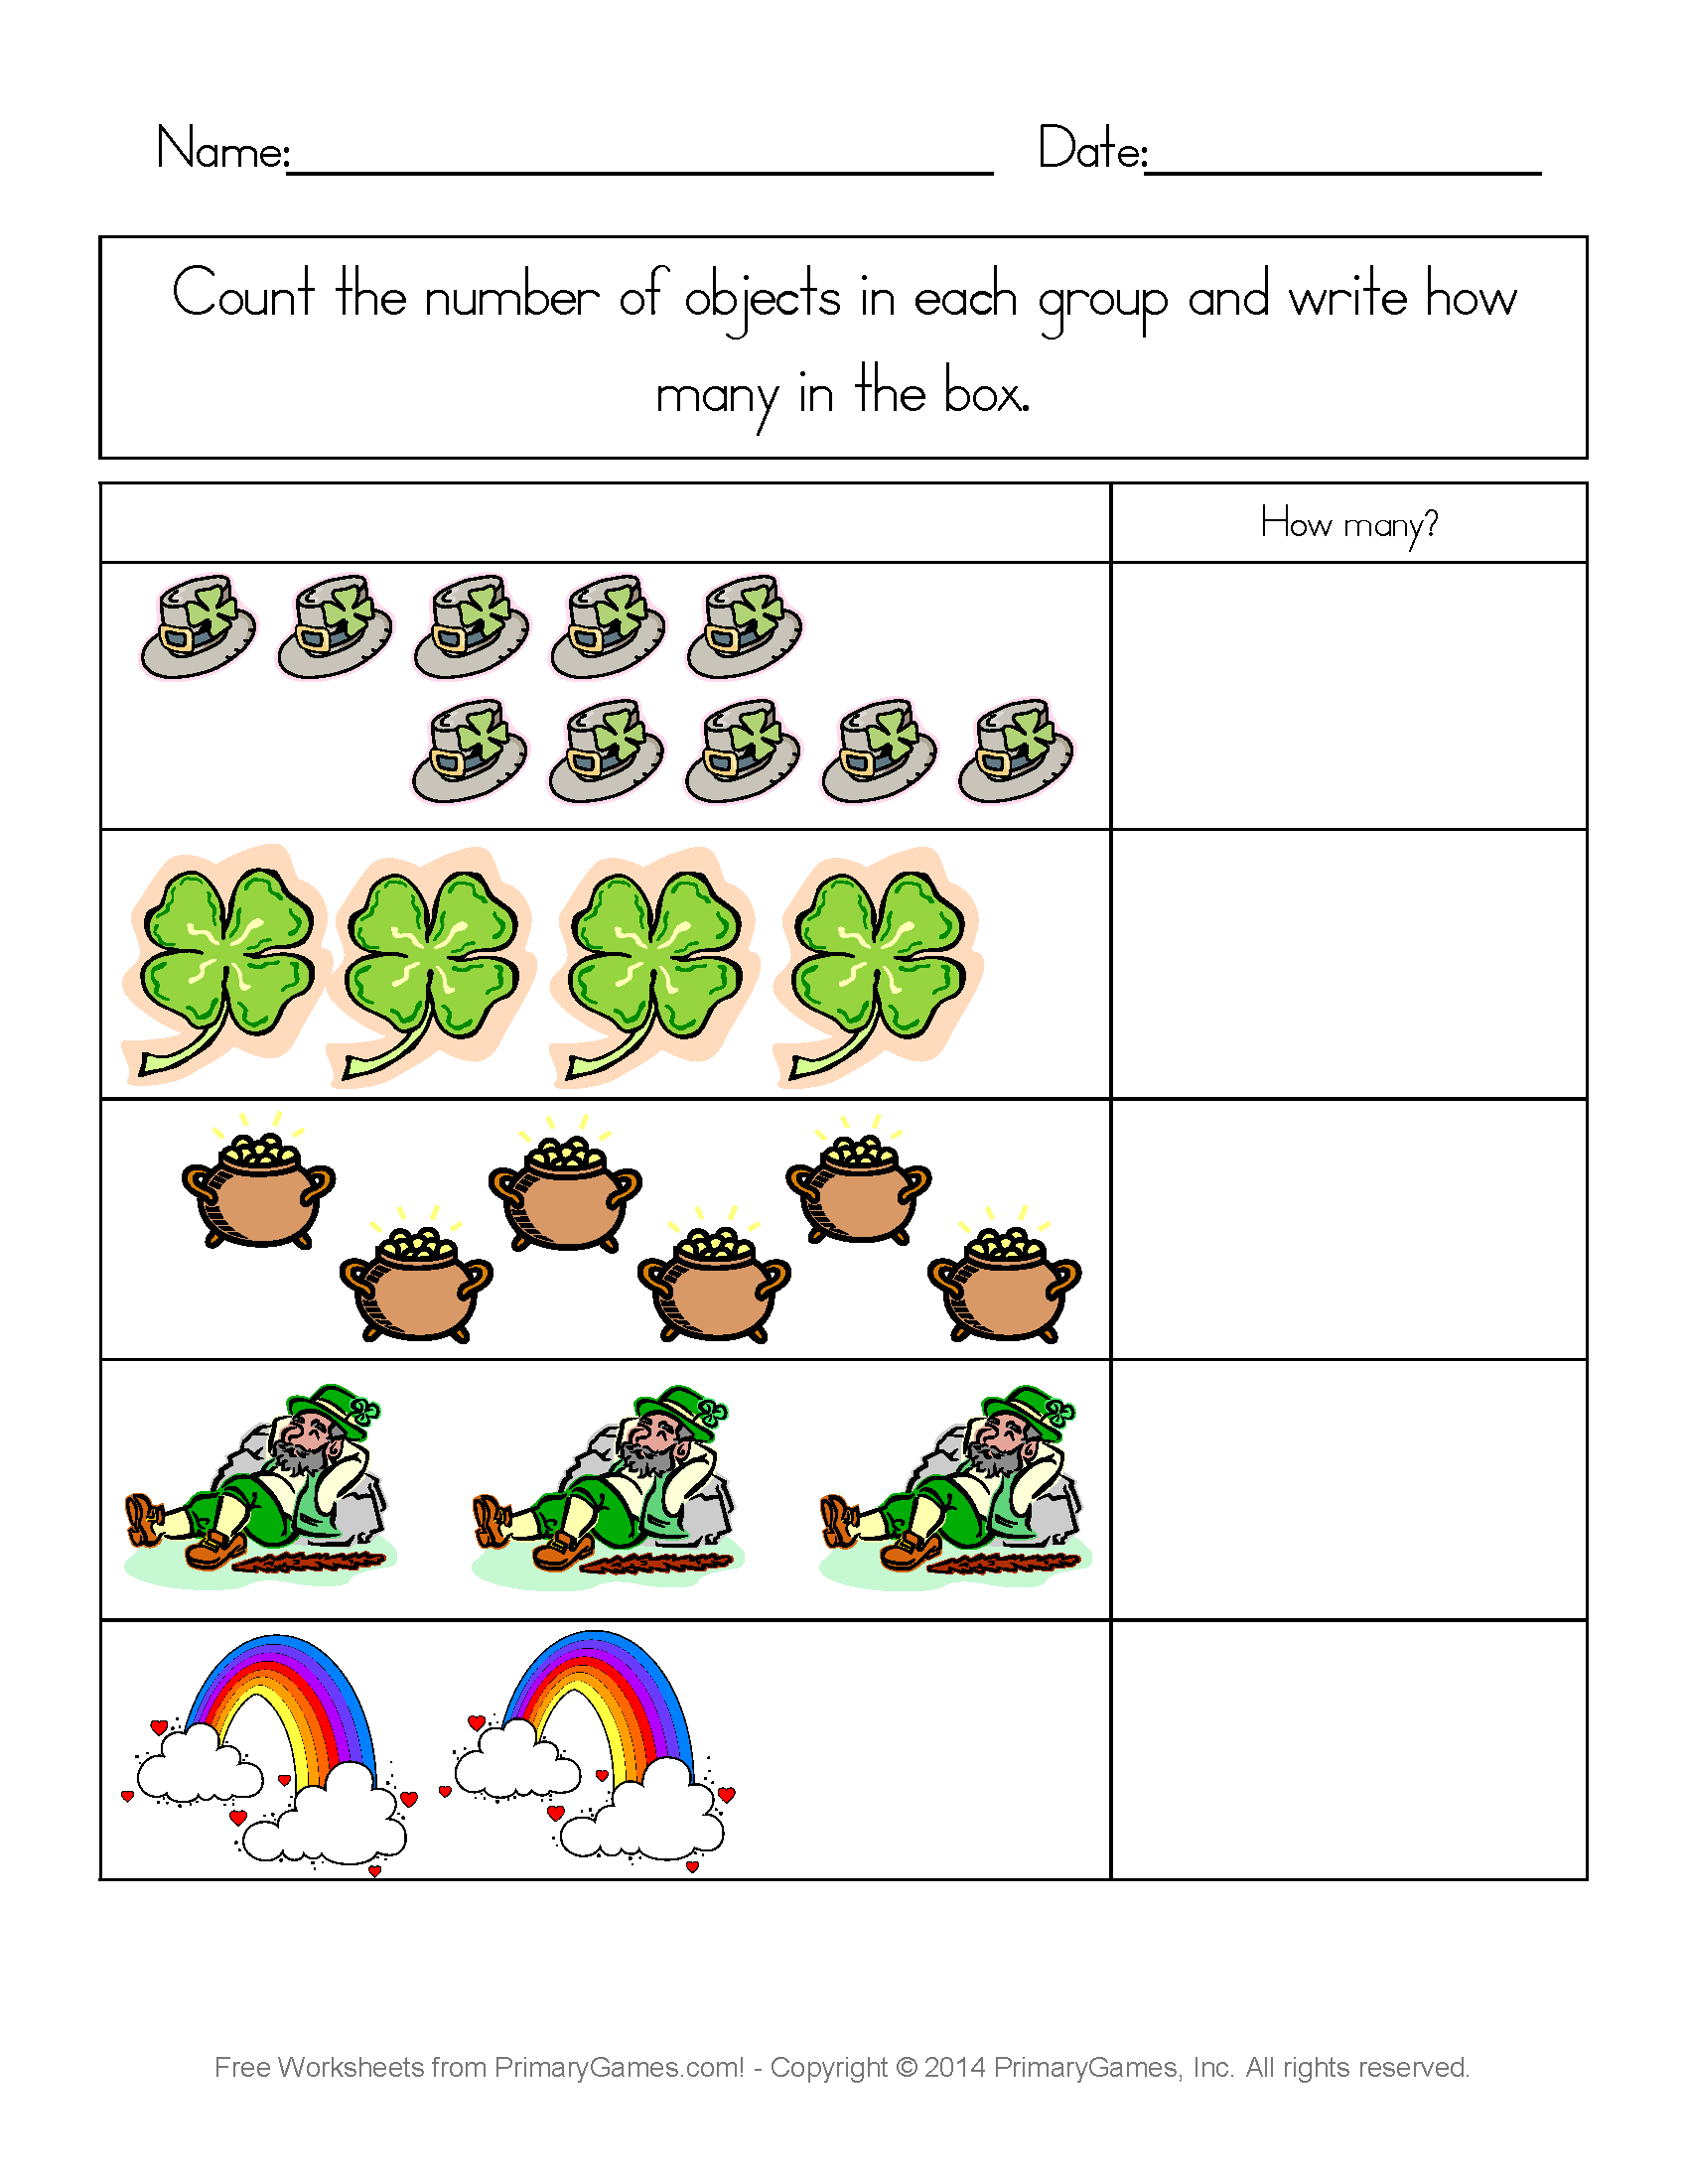 St. Patrick's Day Worksheets: St. Patrick's Day Counting Practice - Free Printable St Patrick's Day Mazes